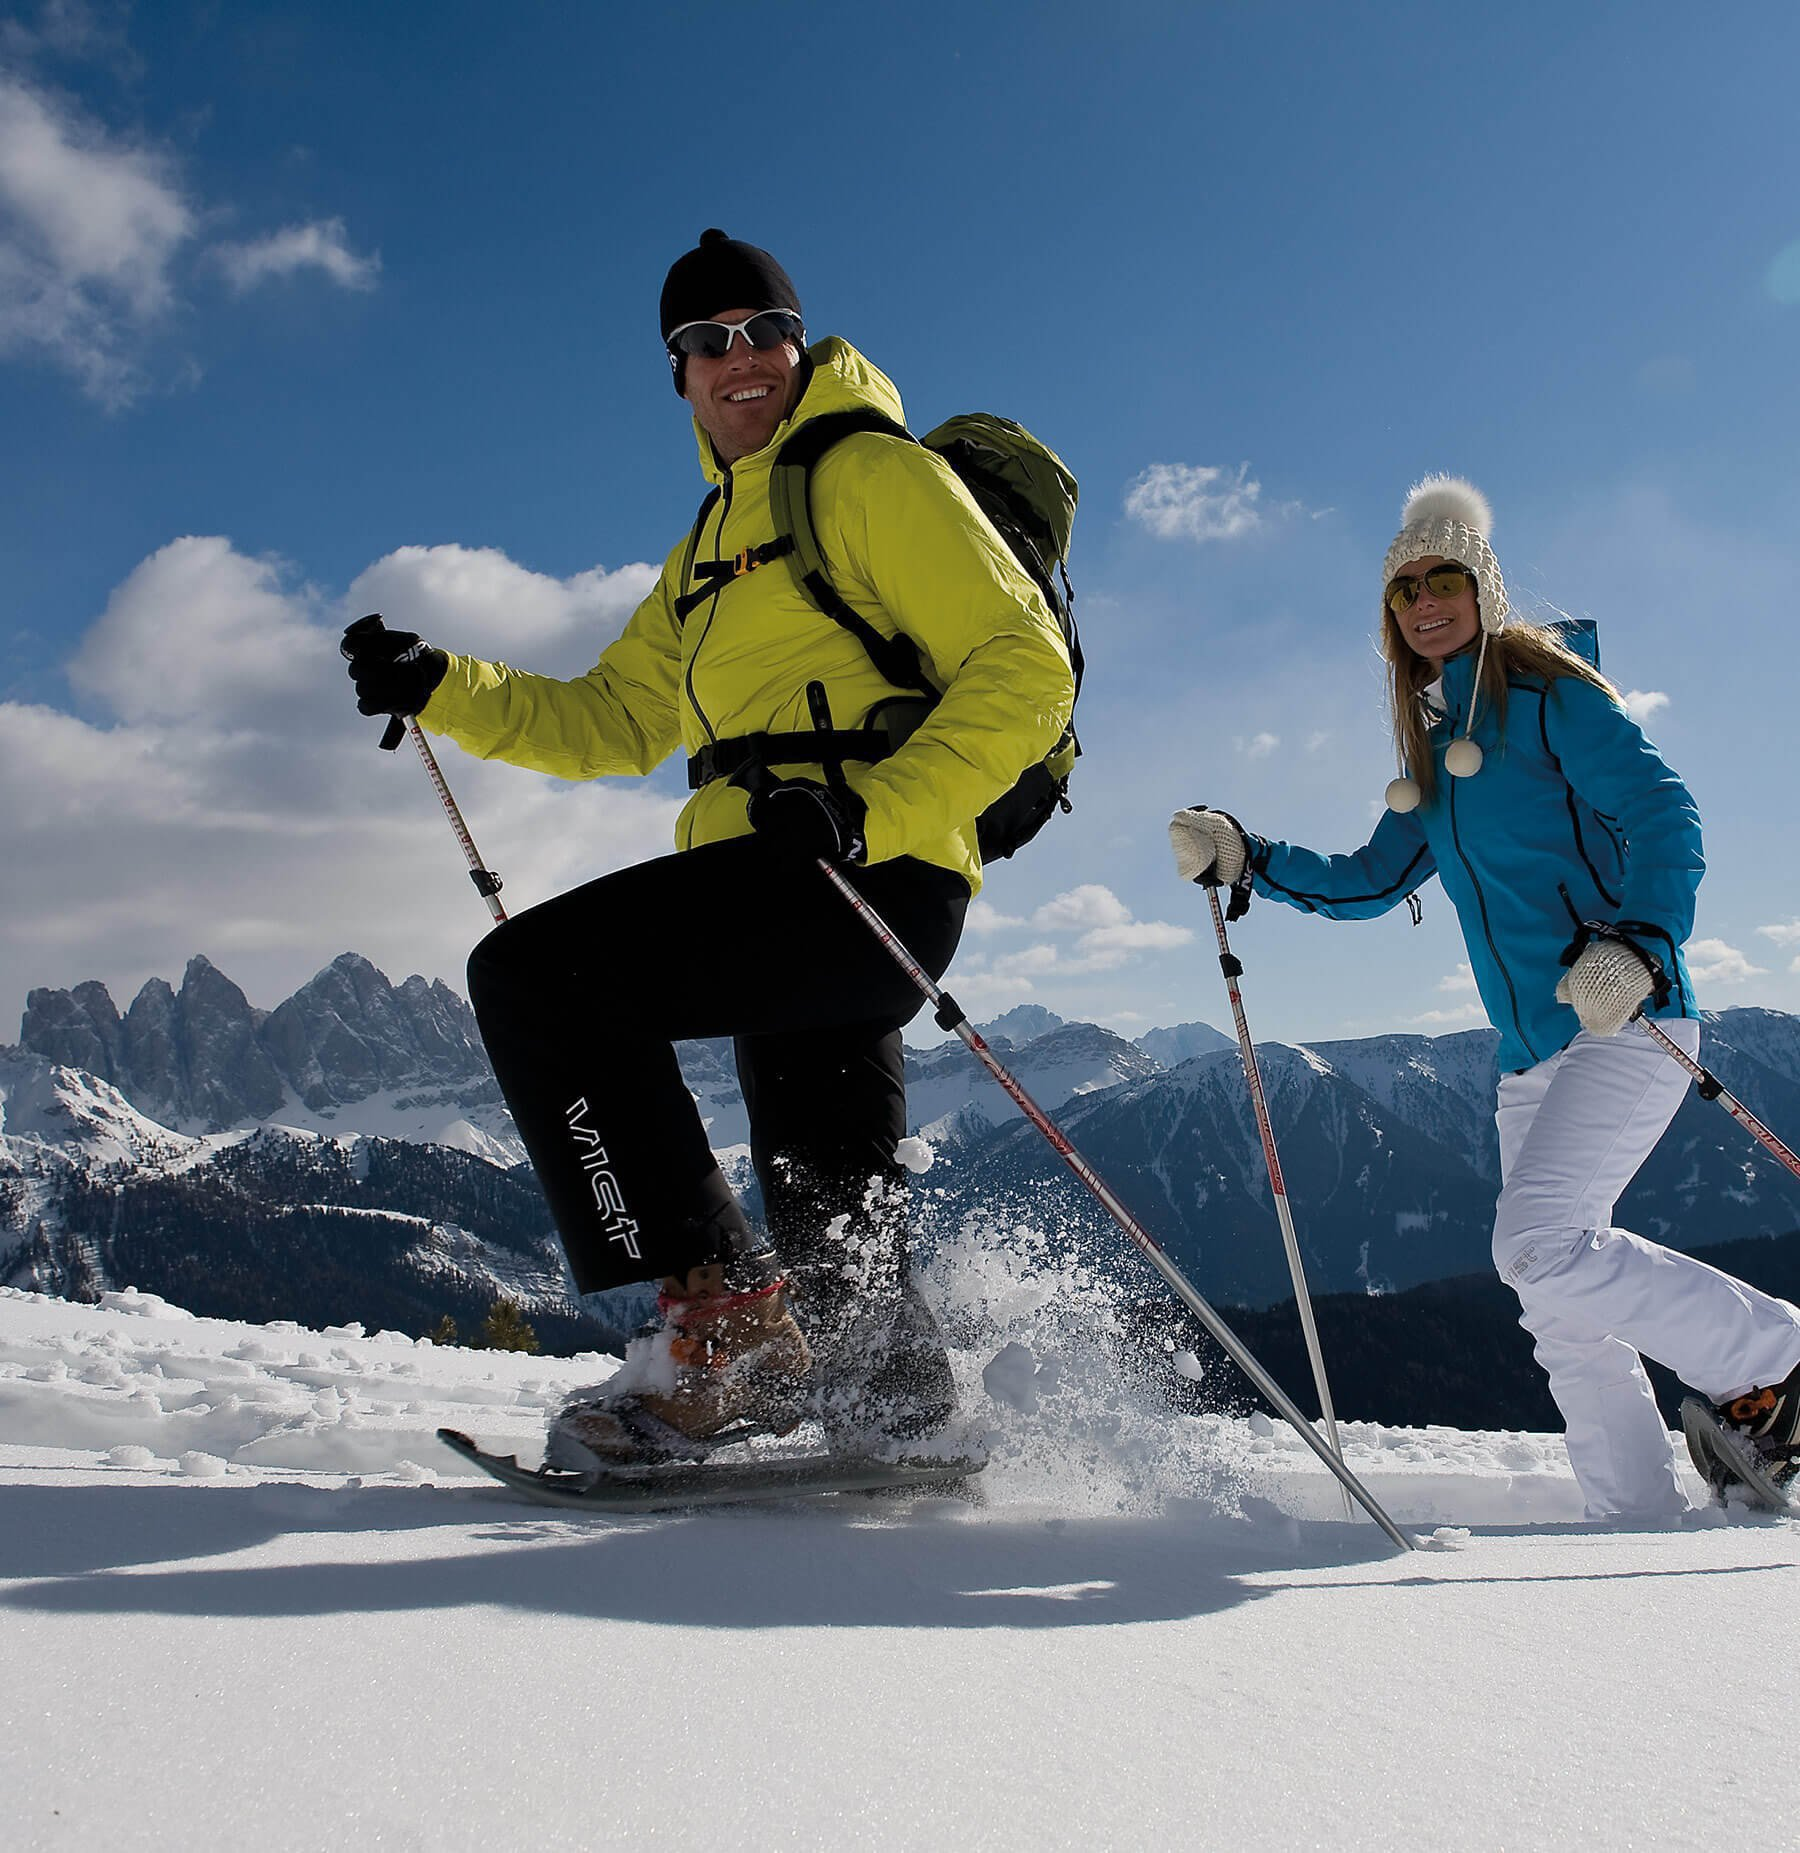 Ski holiday in Isarco Valley: the winter sport centre of Bressanone-Plose